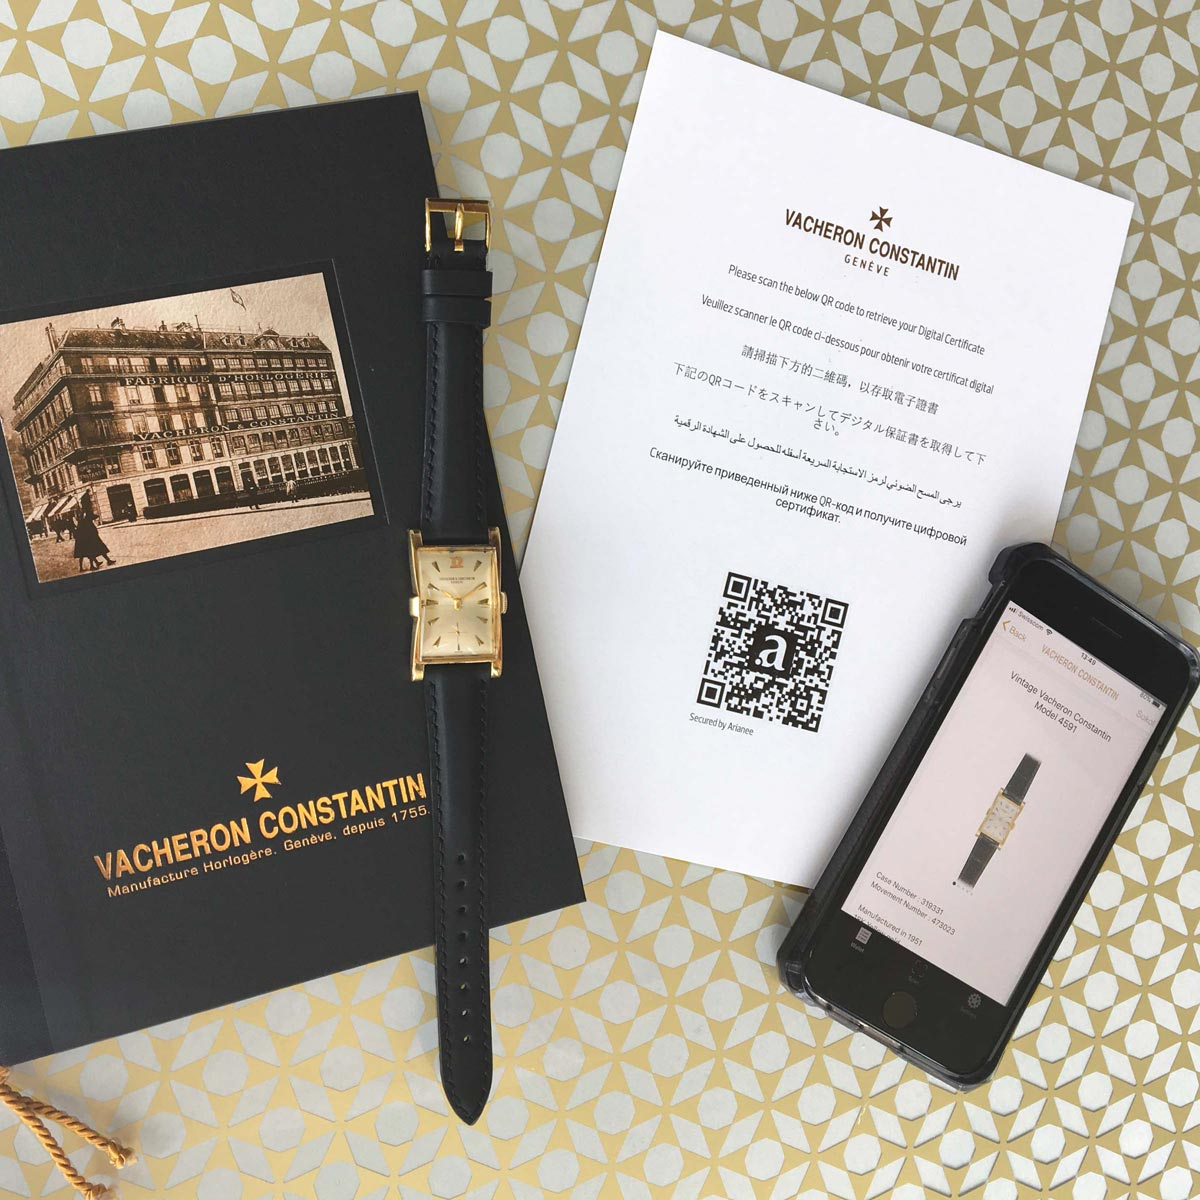 The Watch Quote: Photo - Vacheron Constantin is committing to a certification process supported by Blockchain technology